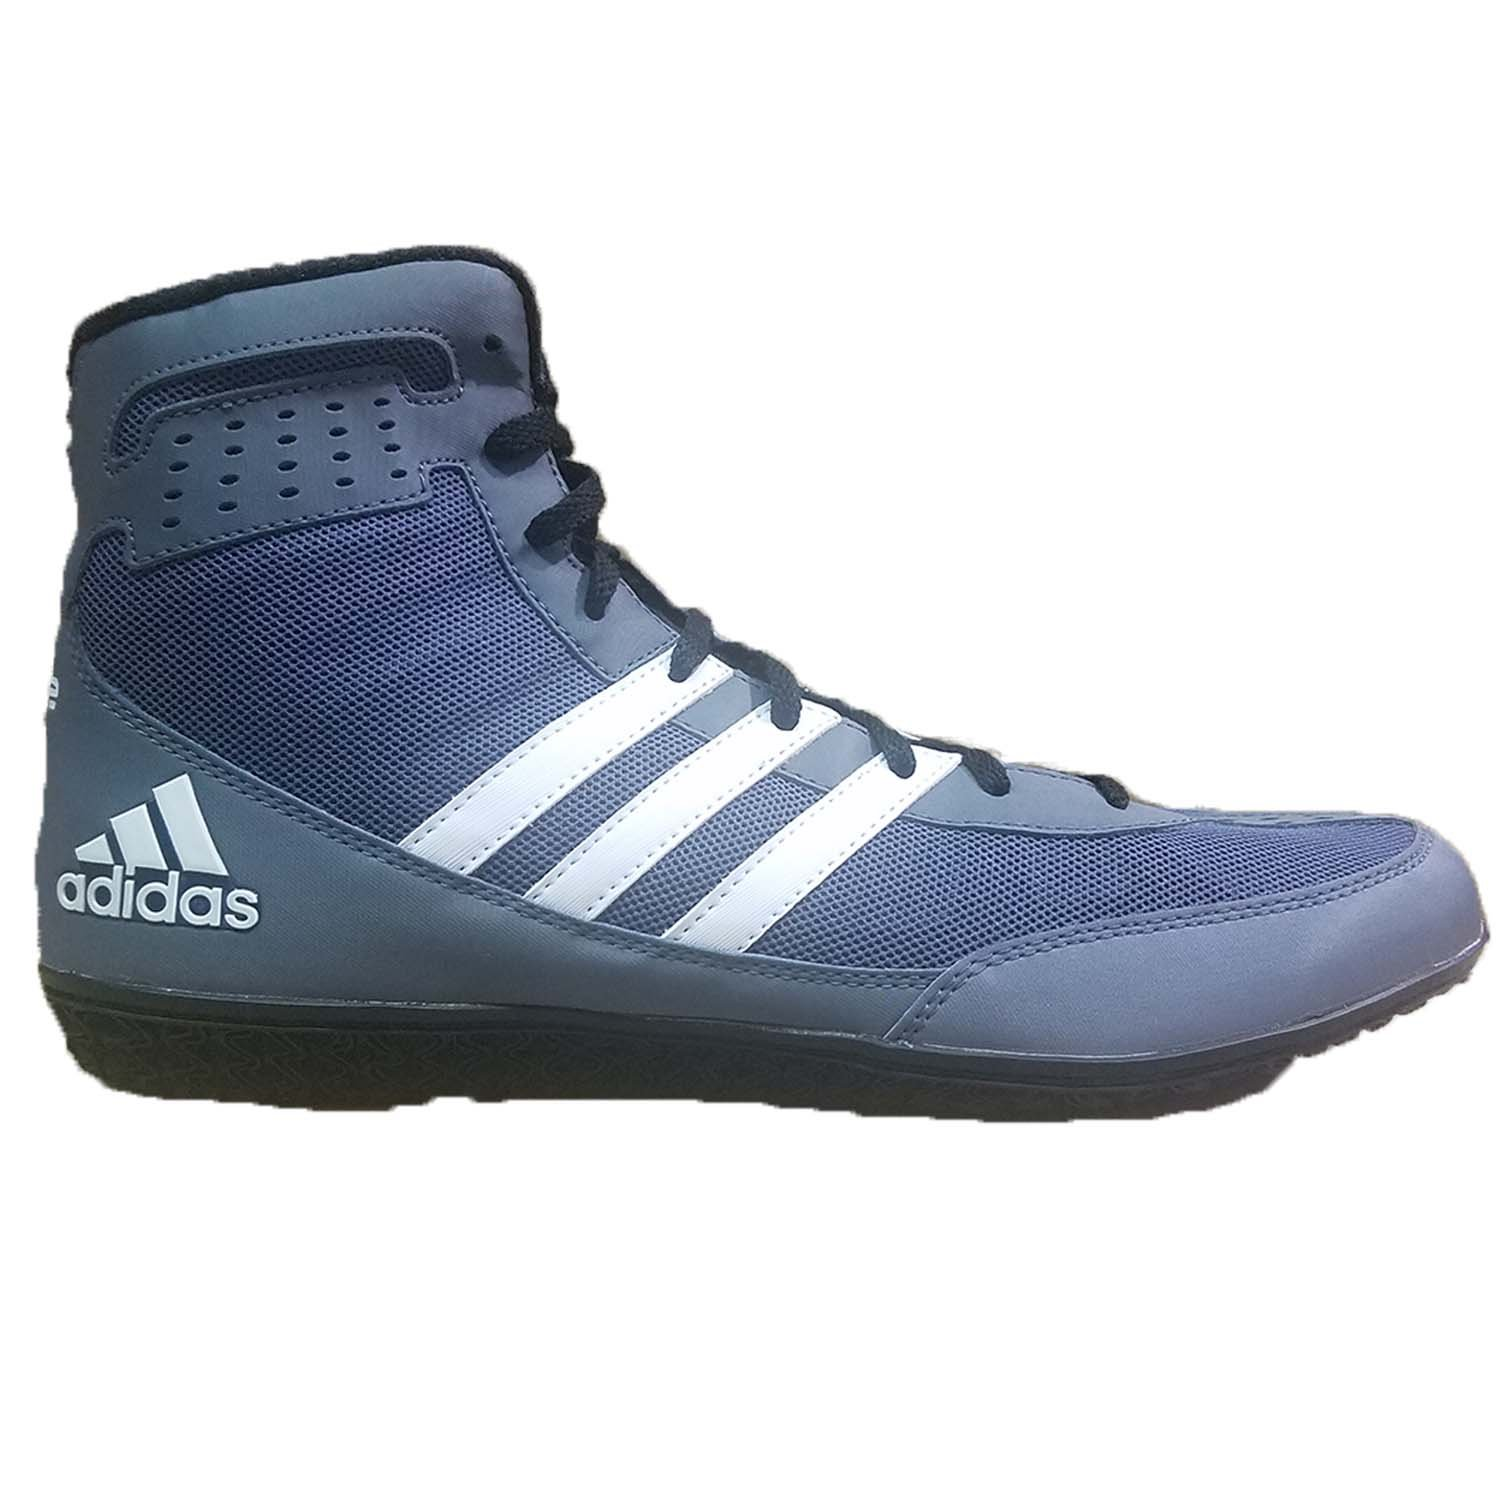 adidas Mat Wizard Dt Grey/Black/White Wrestling Shoes 8 by adidas